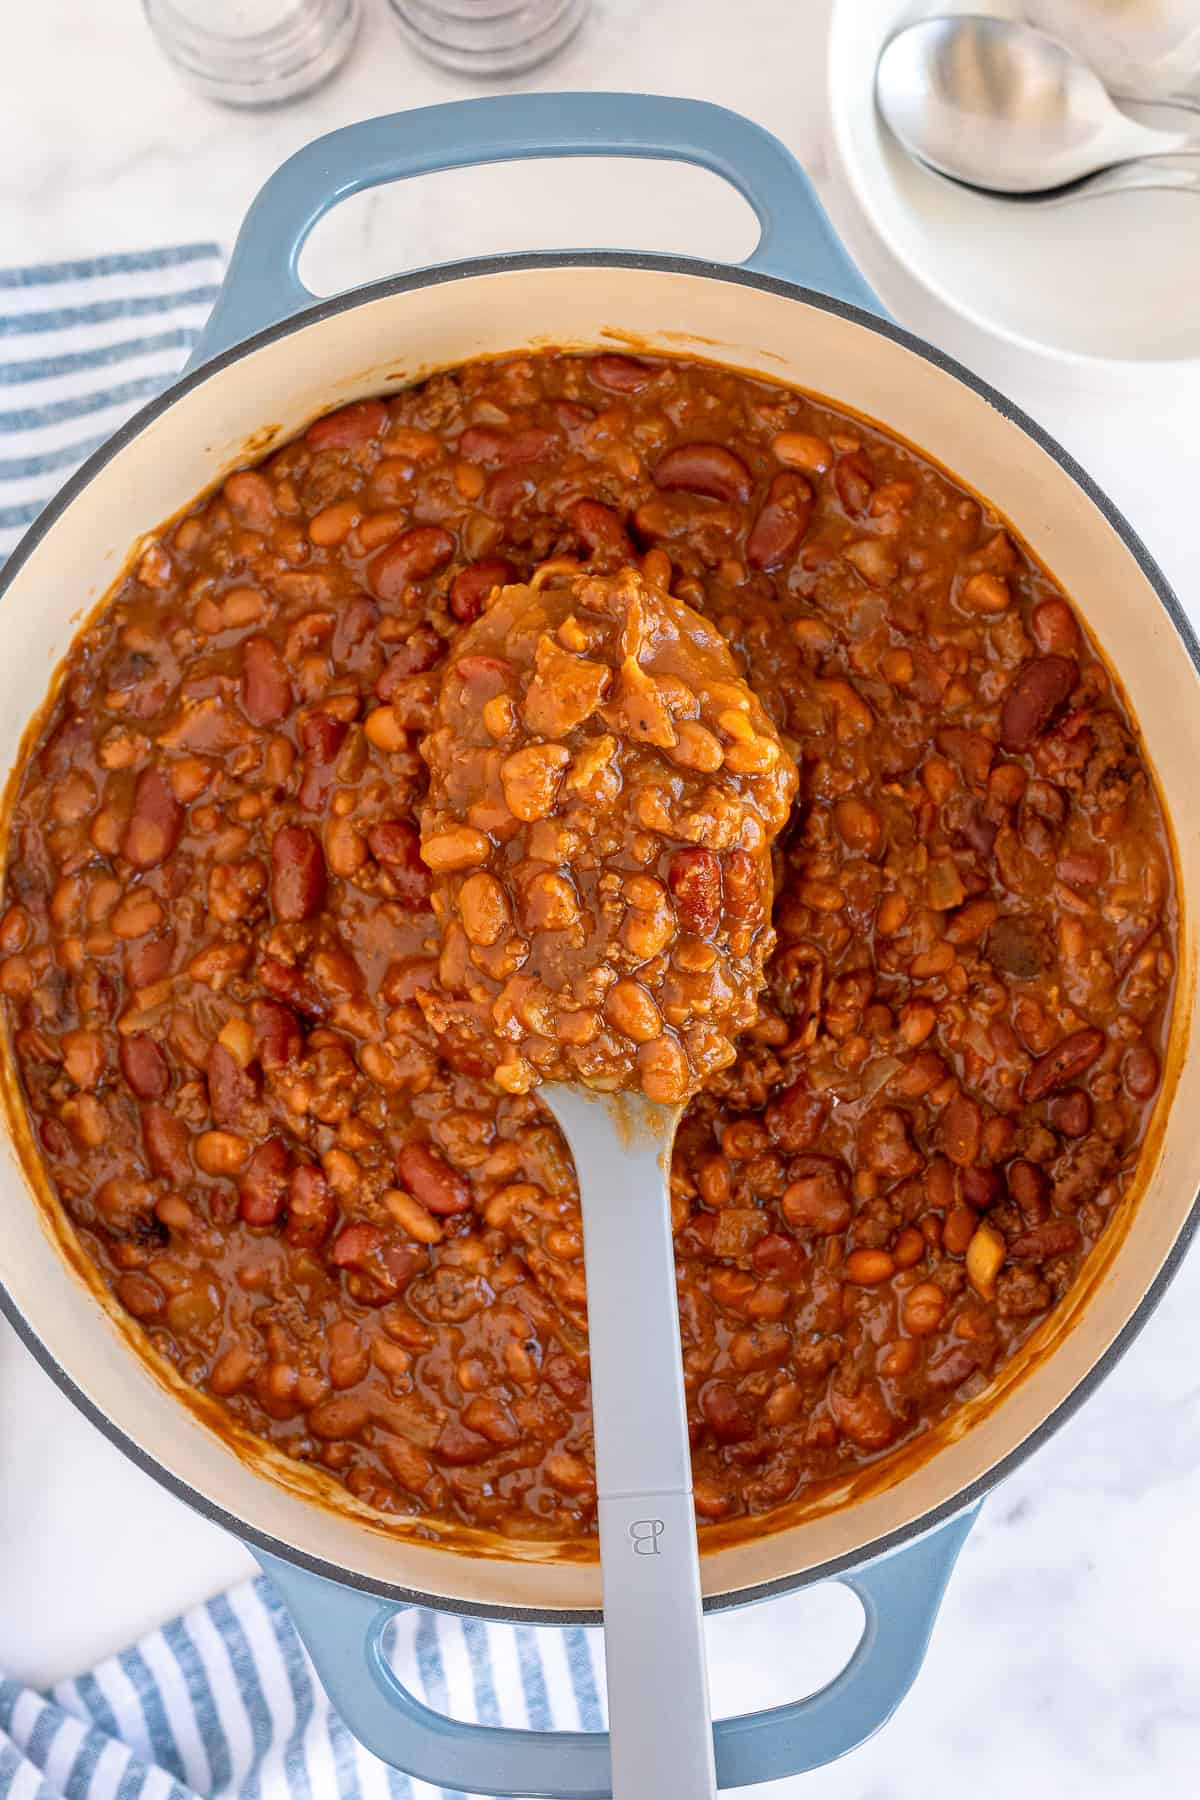 A spoon full of baked beans hovers over a pot.